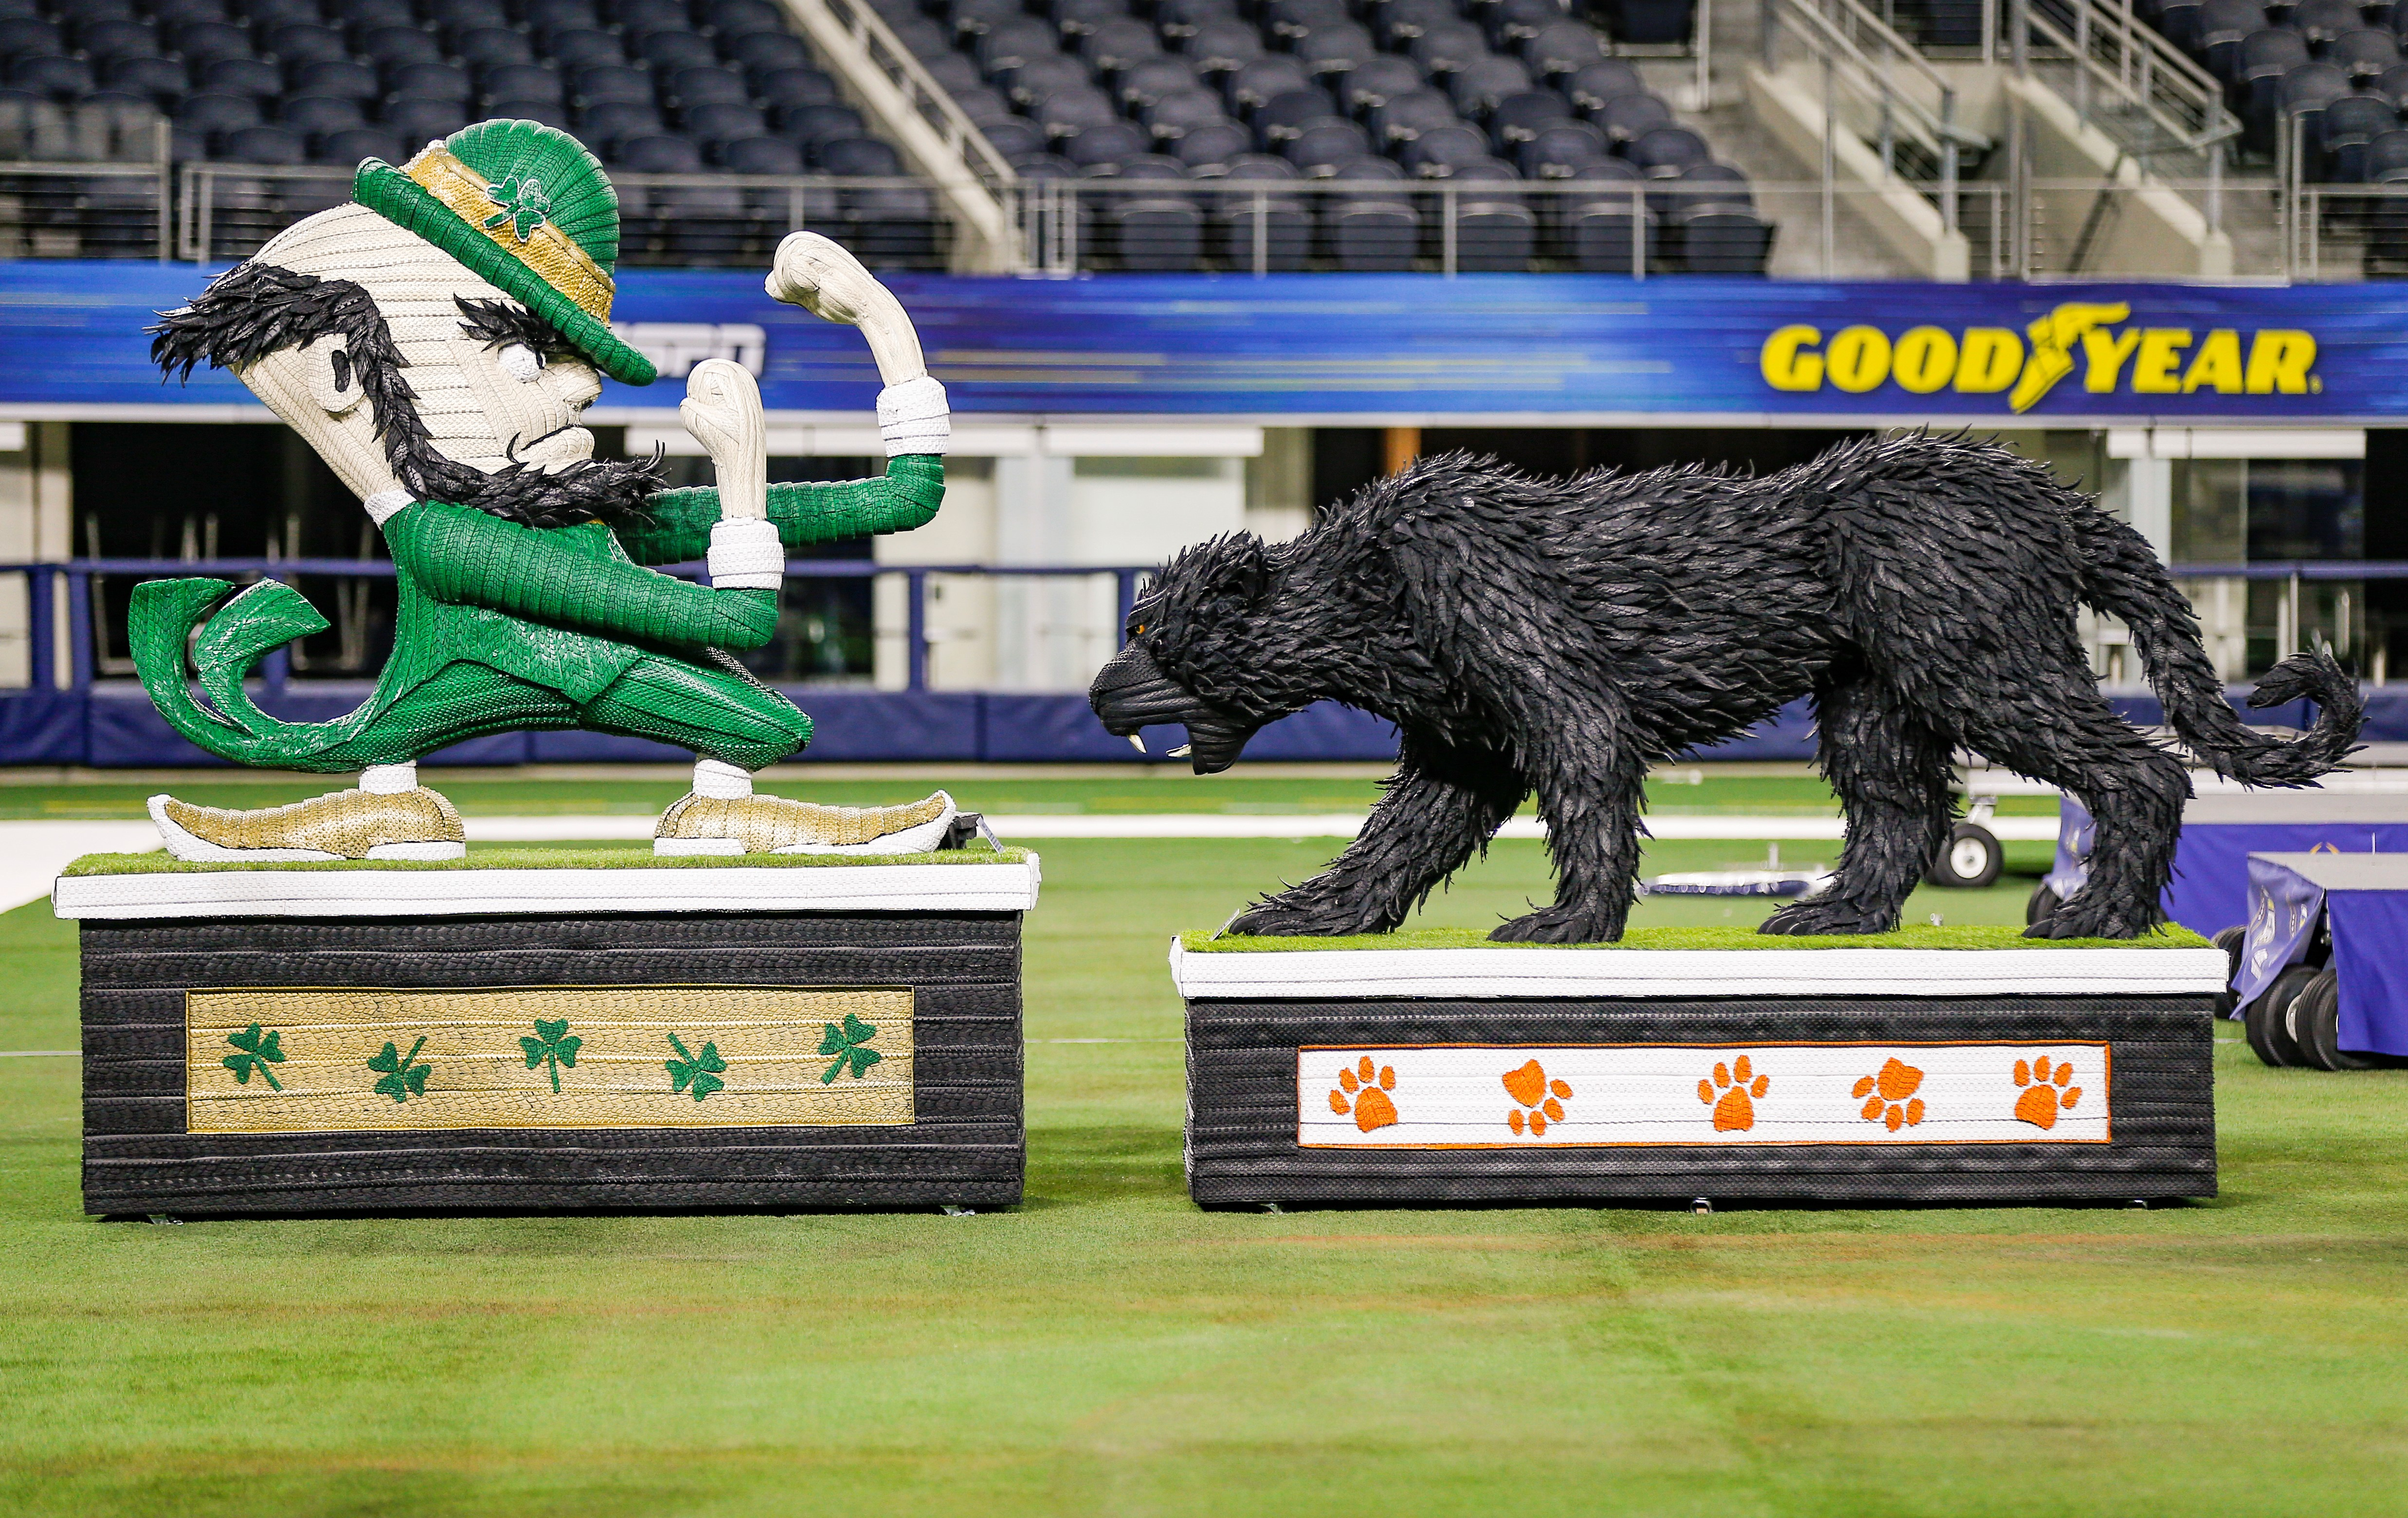 Goodyear Continues Its Sponsorship of the Cotton Bowl